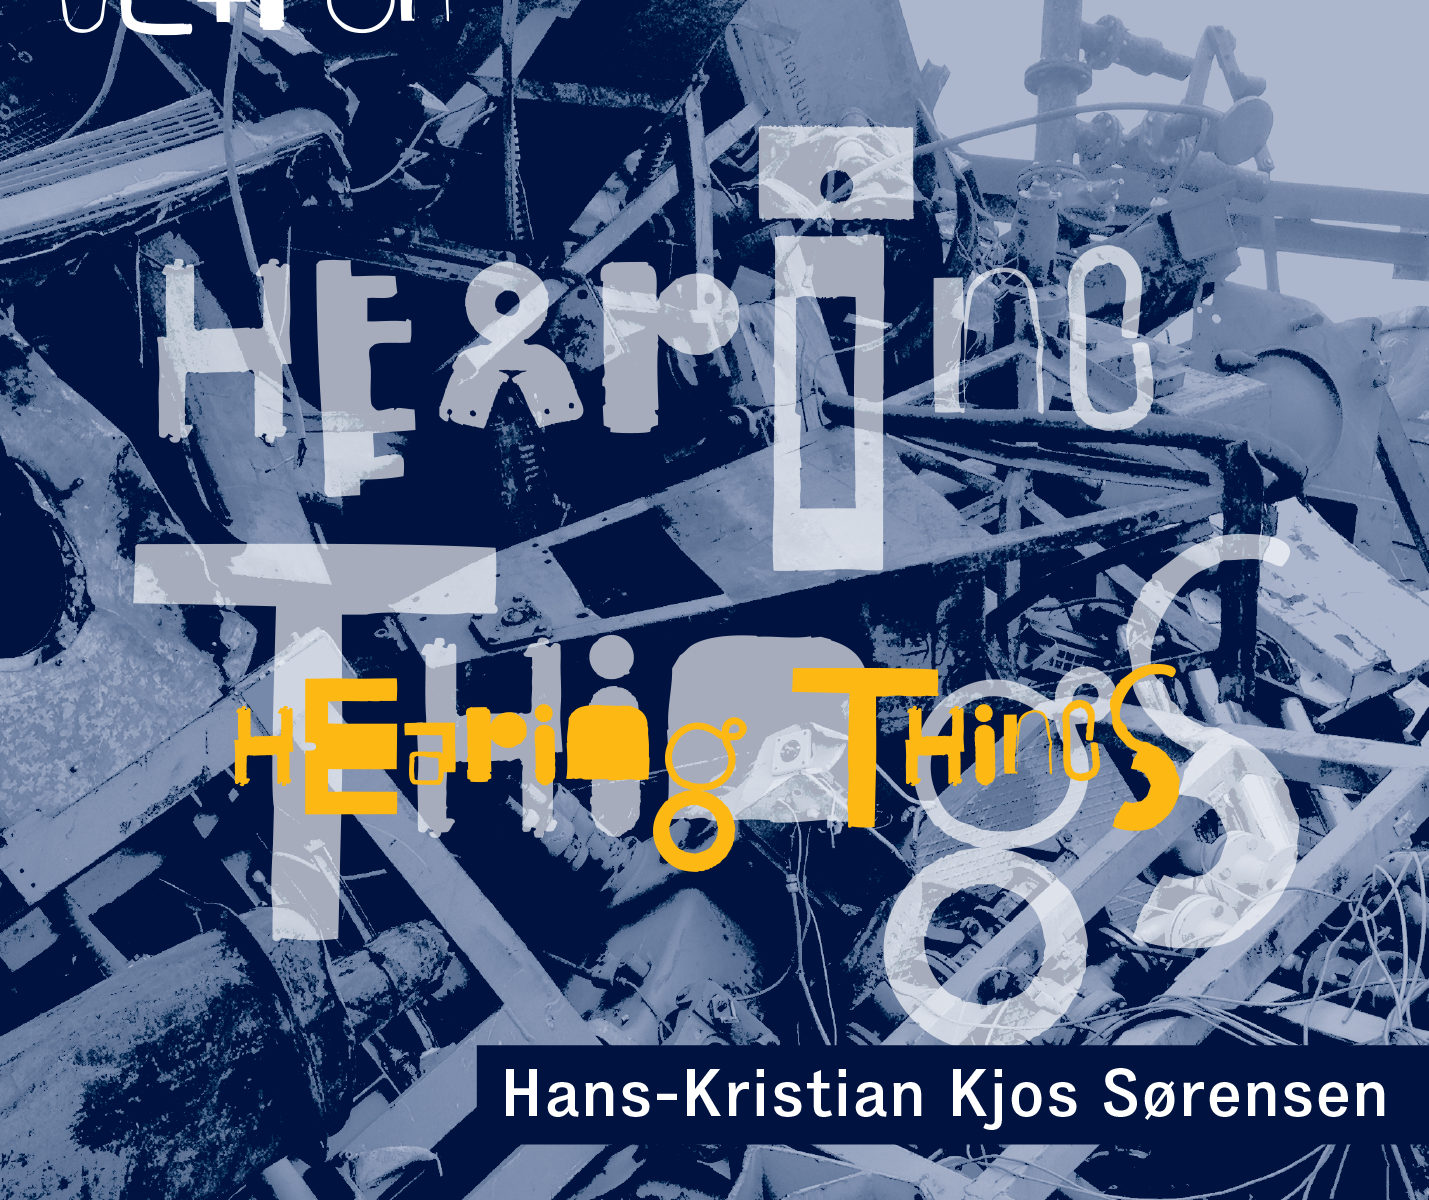 Check out Hans-Kristian's latest solo album